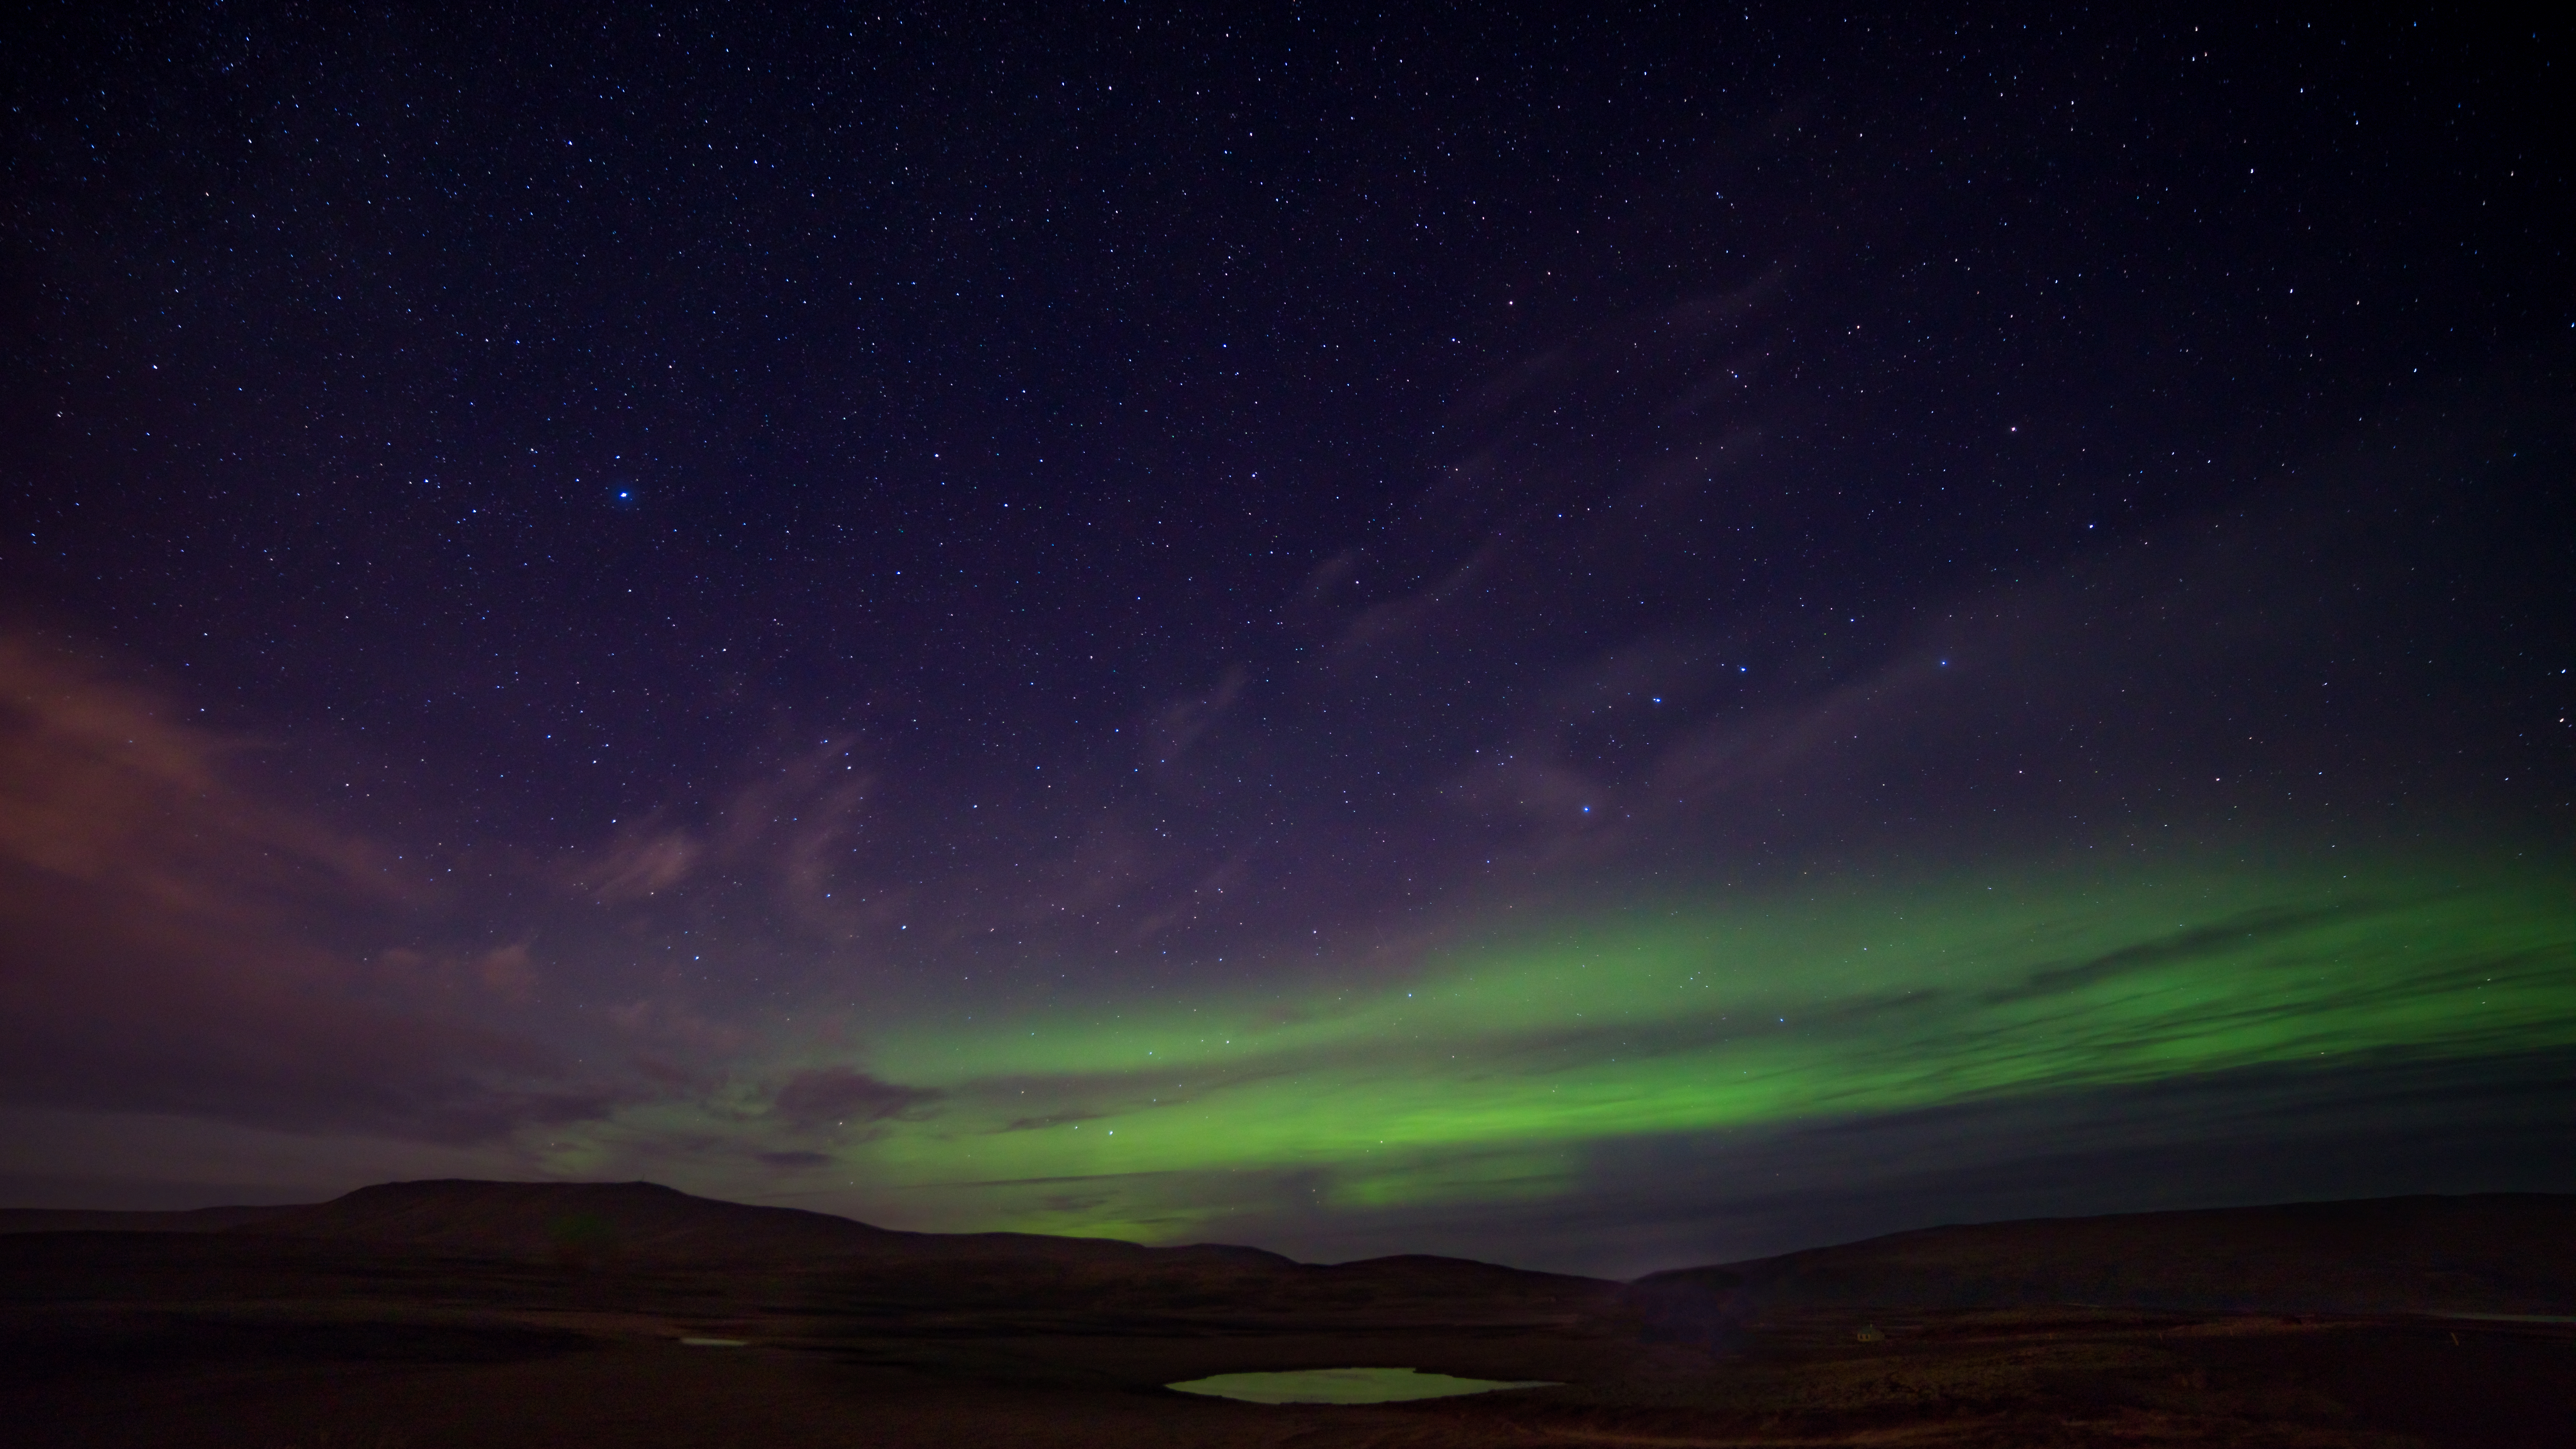 Auroras or northern lights are collisions between electrically charged particles from the sun that enter the earth's atmosphere.